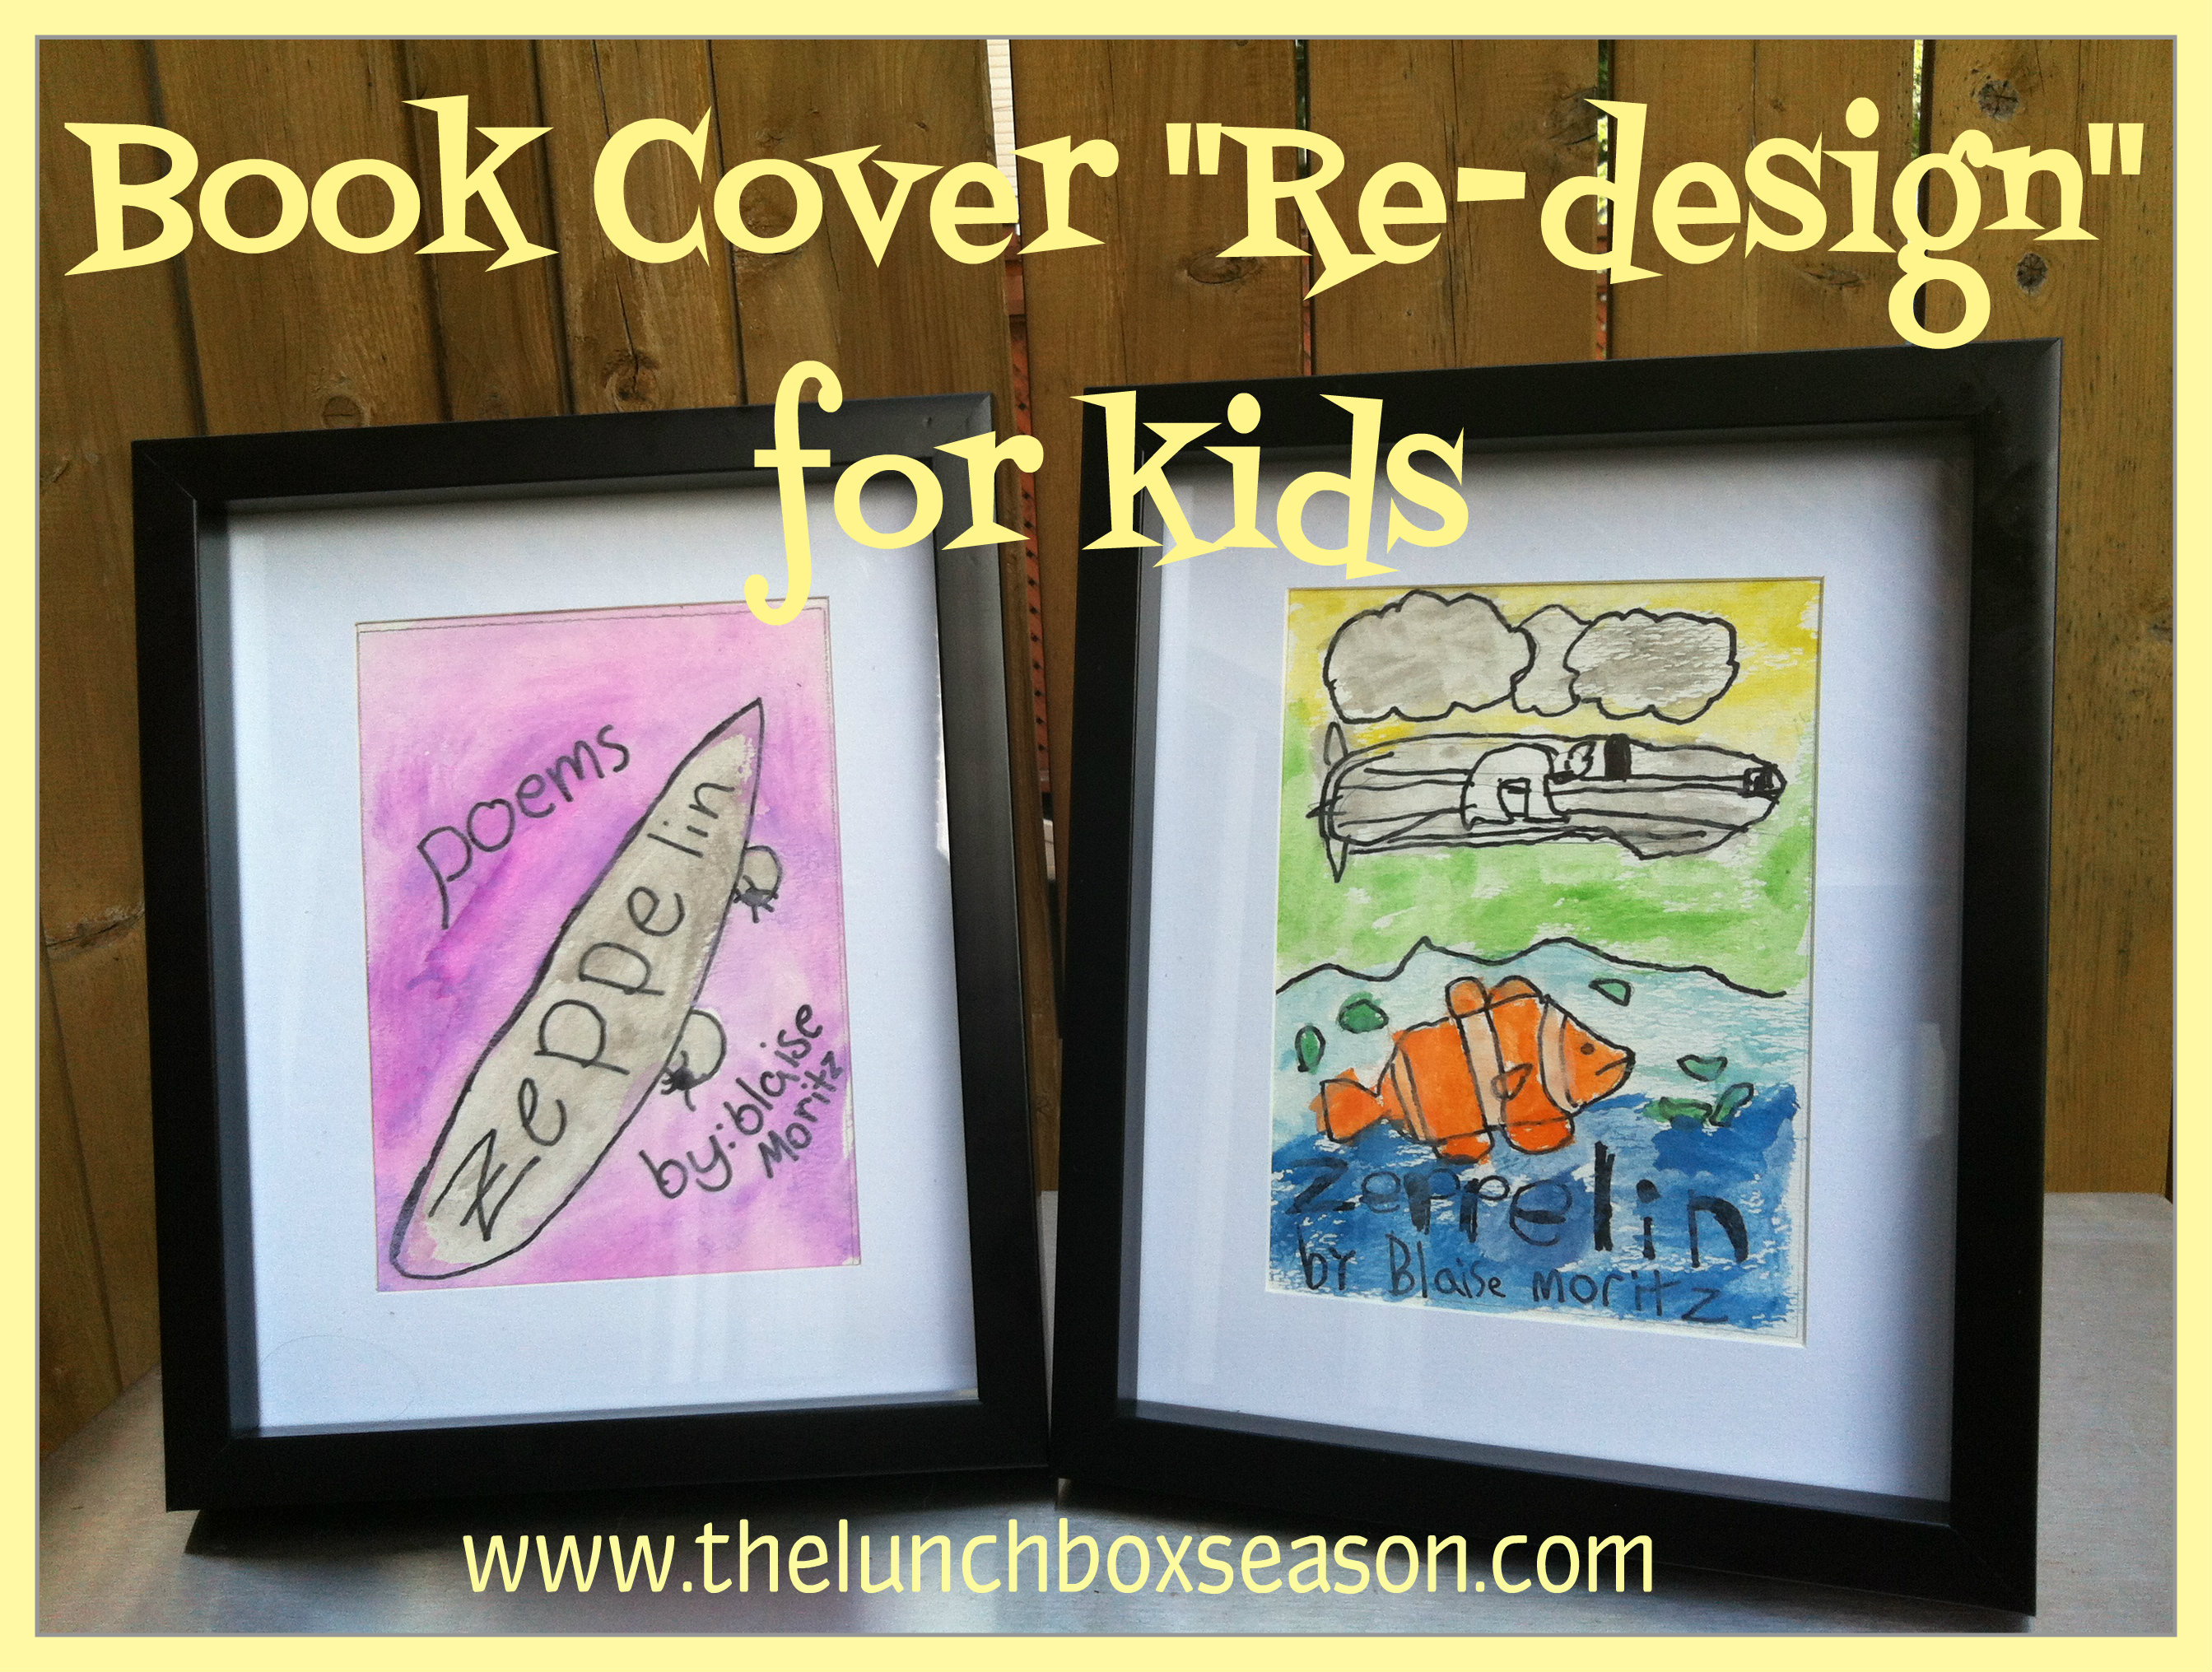 Book Cover Design For Kids : Book cover re design for kids the lunchbox season